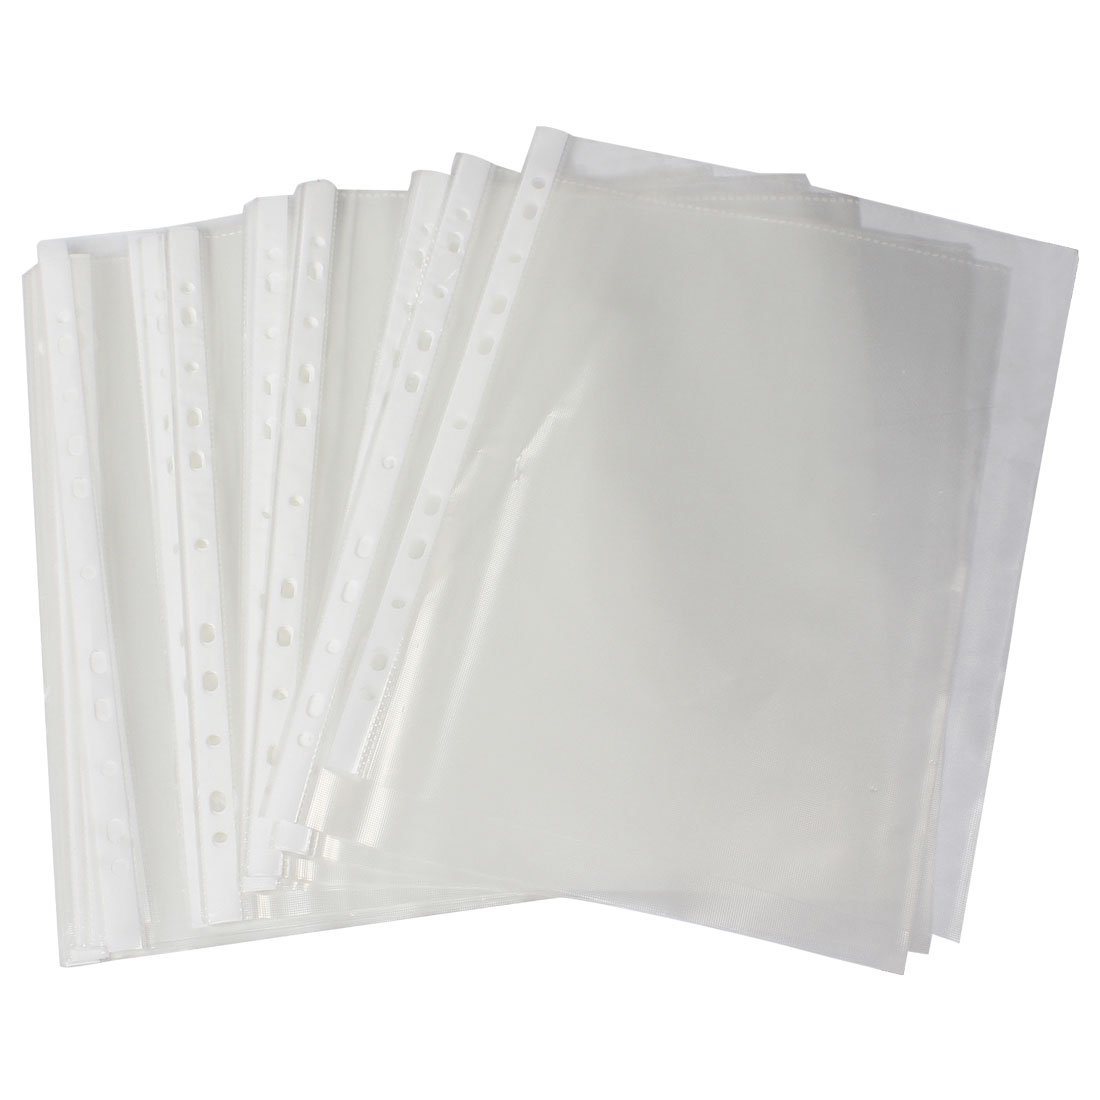 5X Office School A4 Papers Document Sheet Protector Clear White 100 Pcs